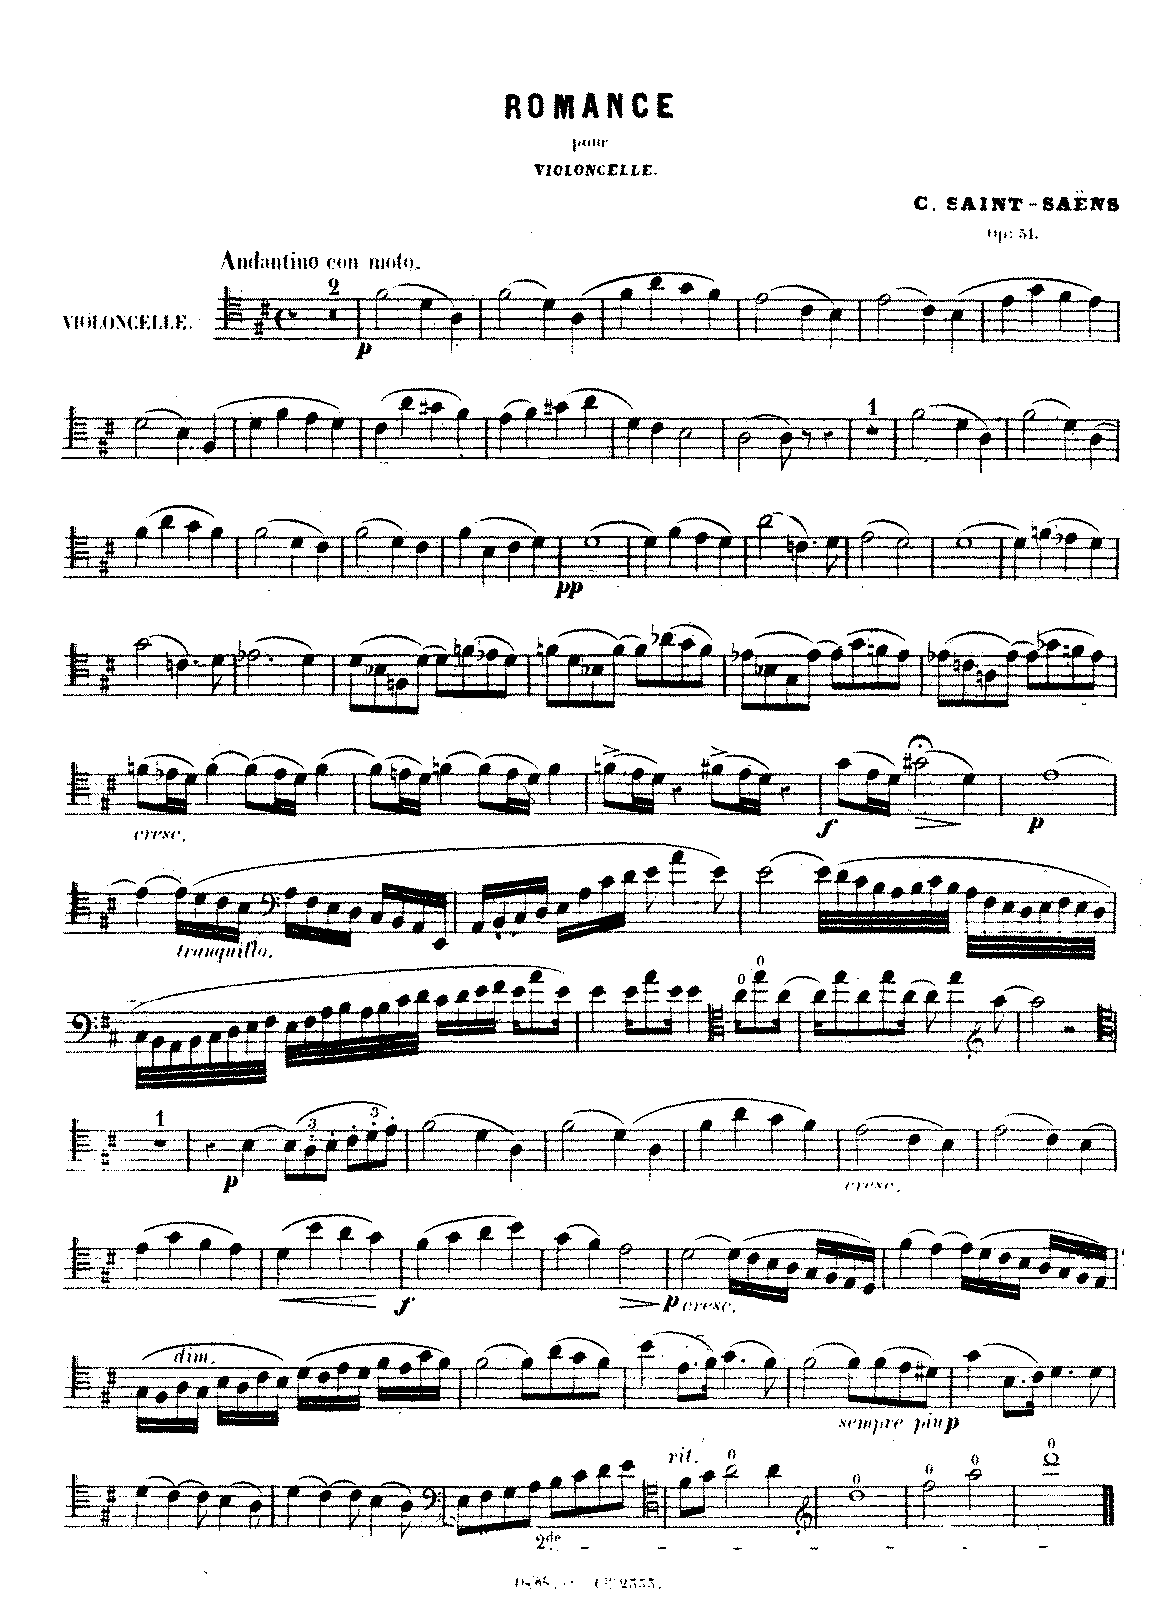 PMLP69036-Saint-Saëns - Romance, Op. 51 (cello and piano).pdf